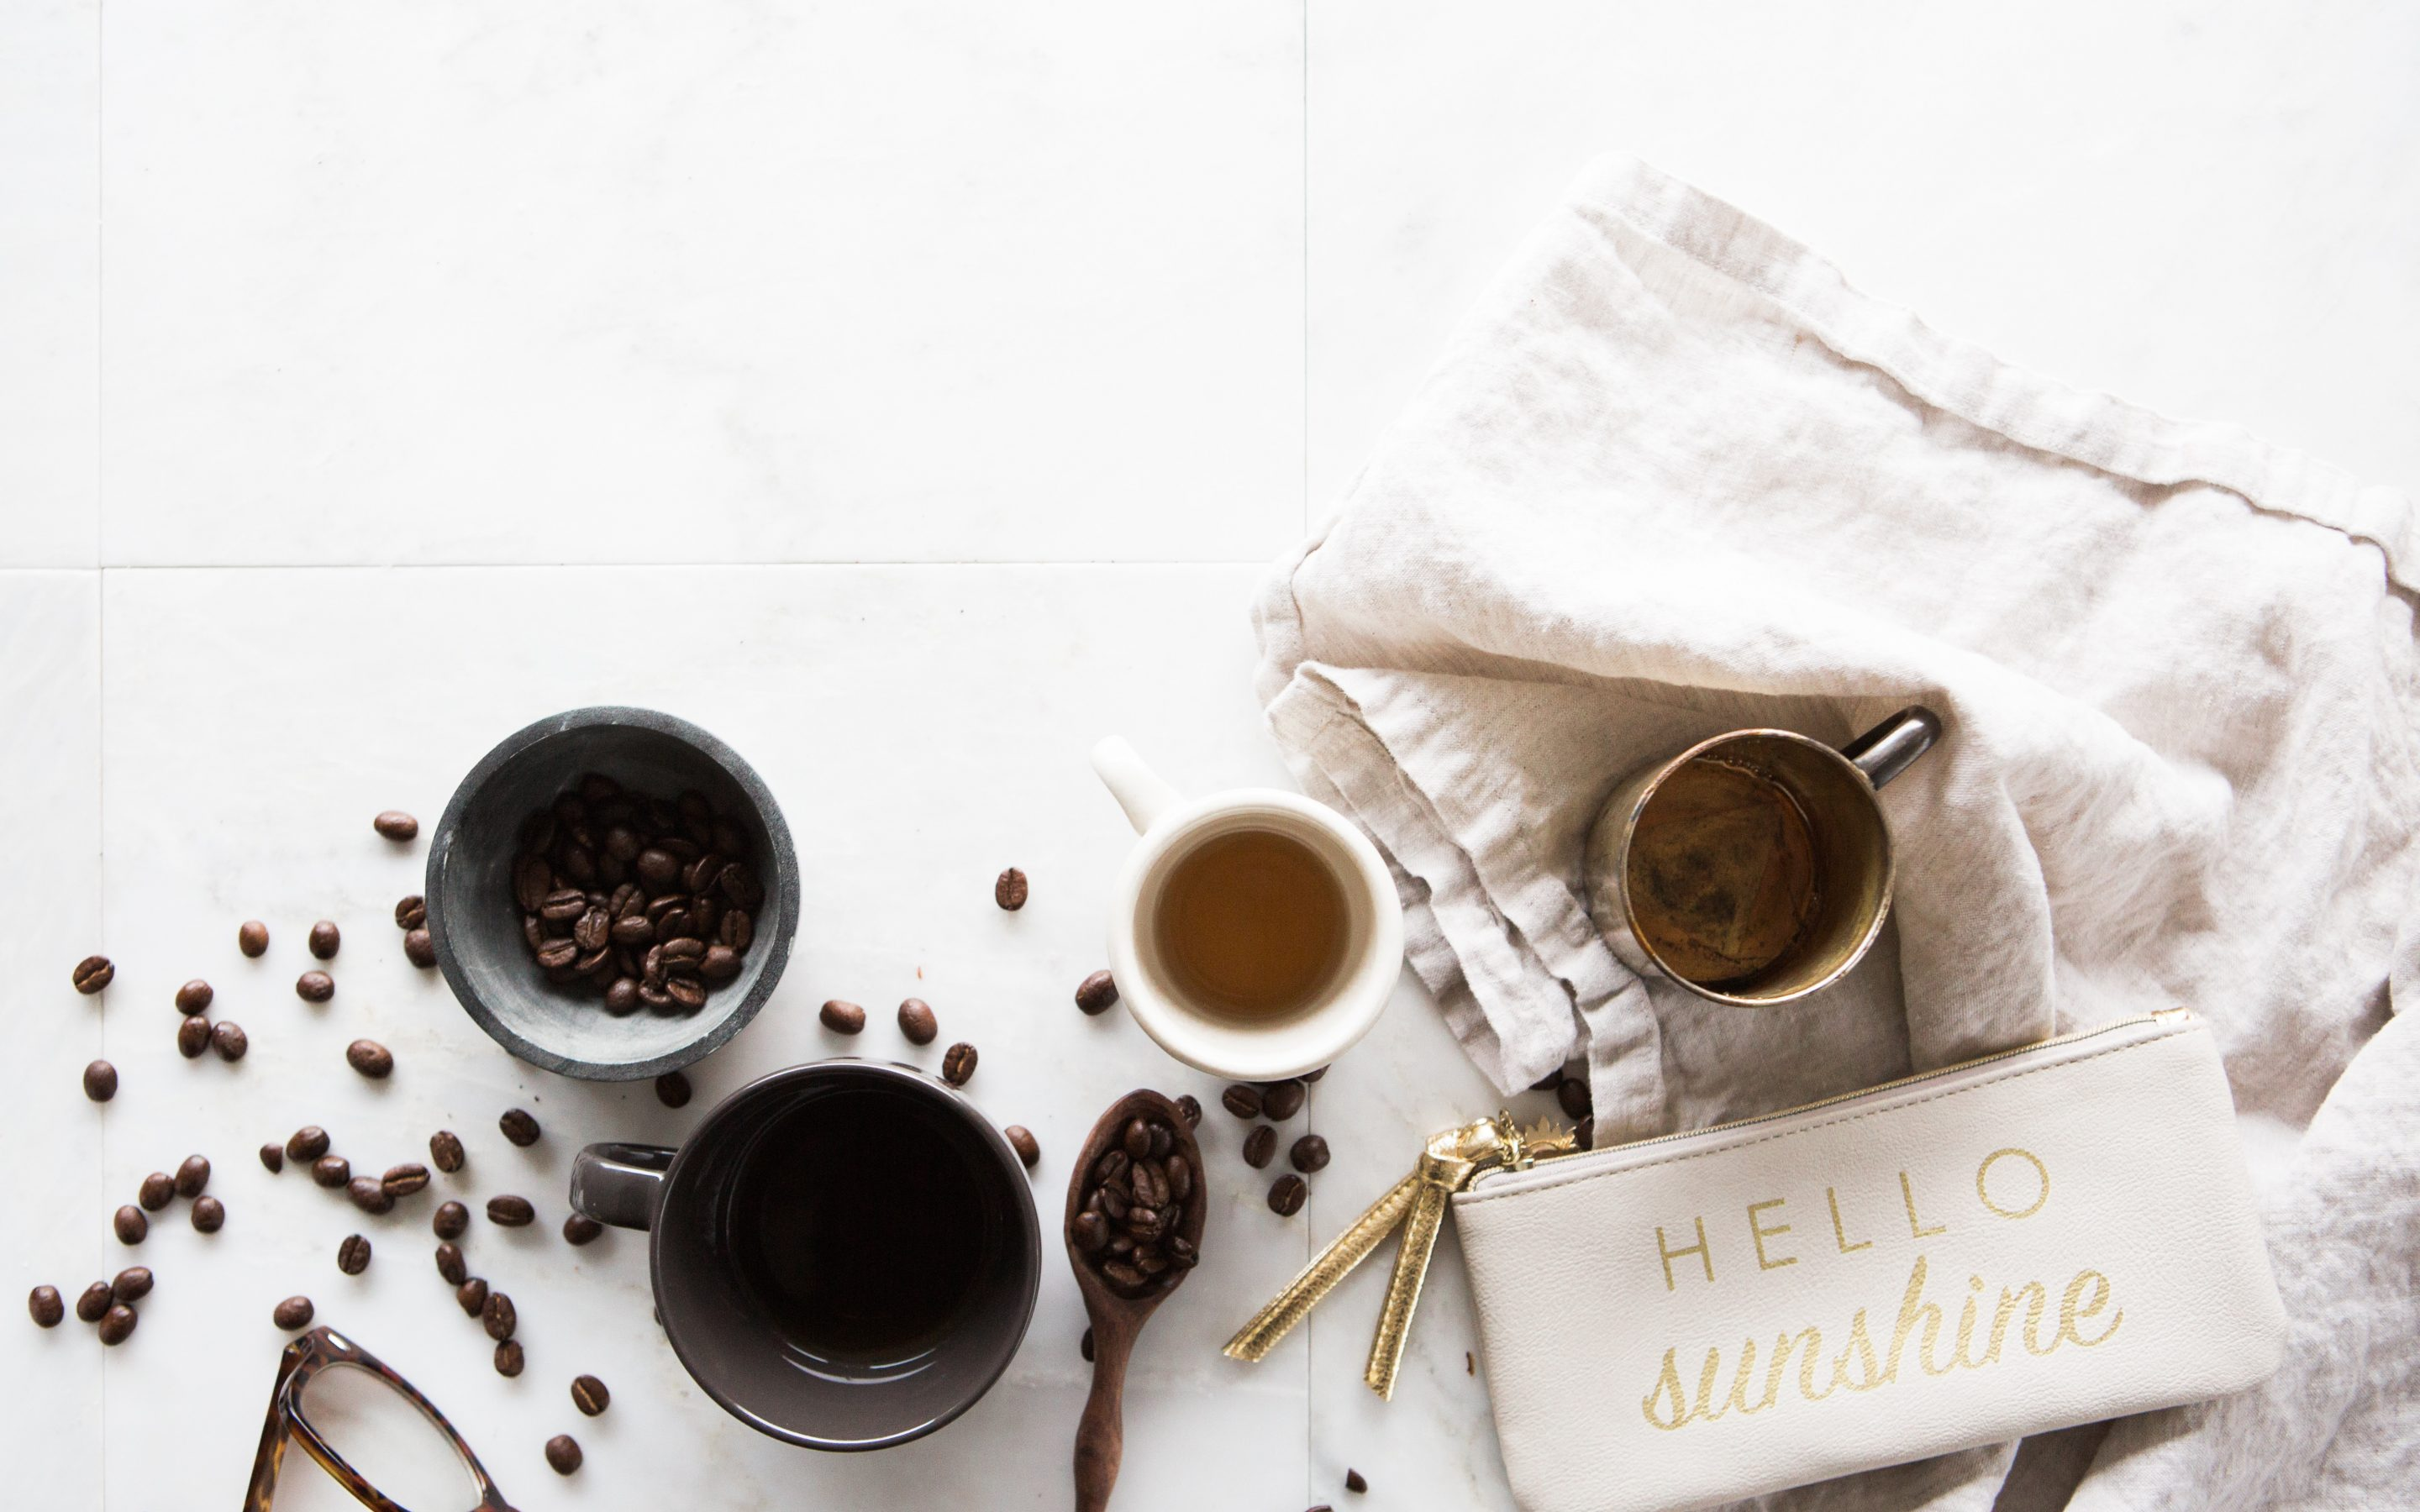 Scrub up:  The benefits of coffee scrubbing!